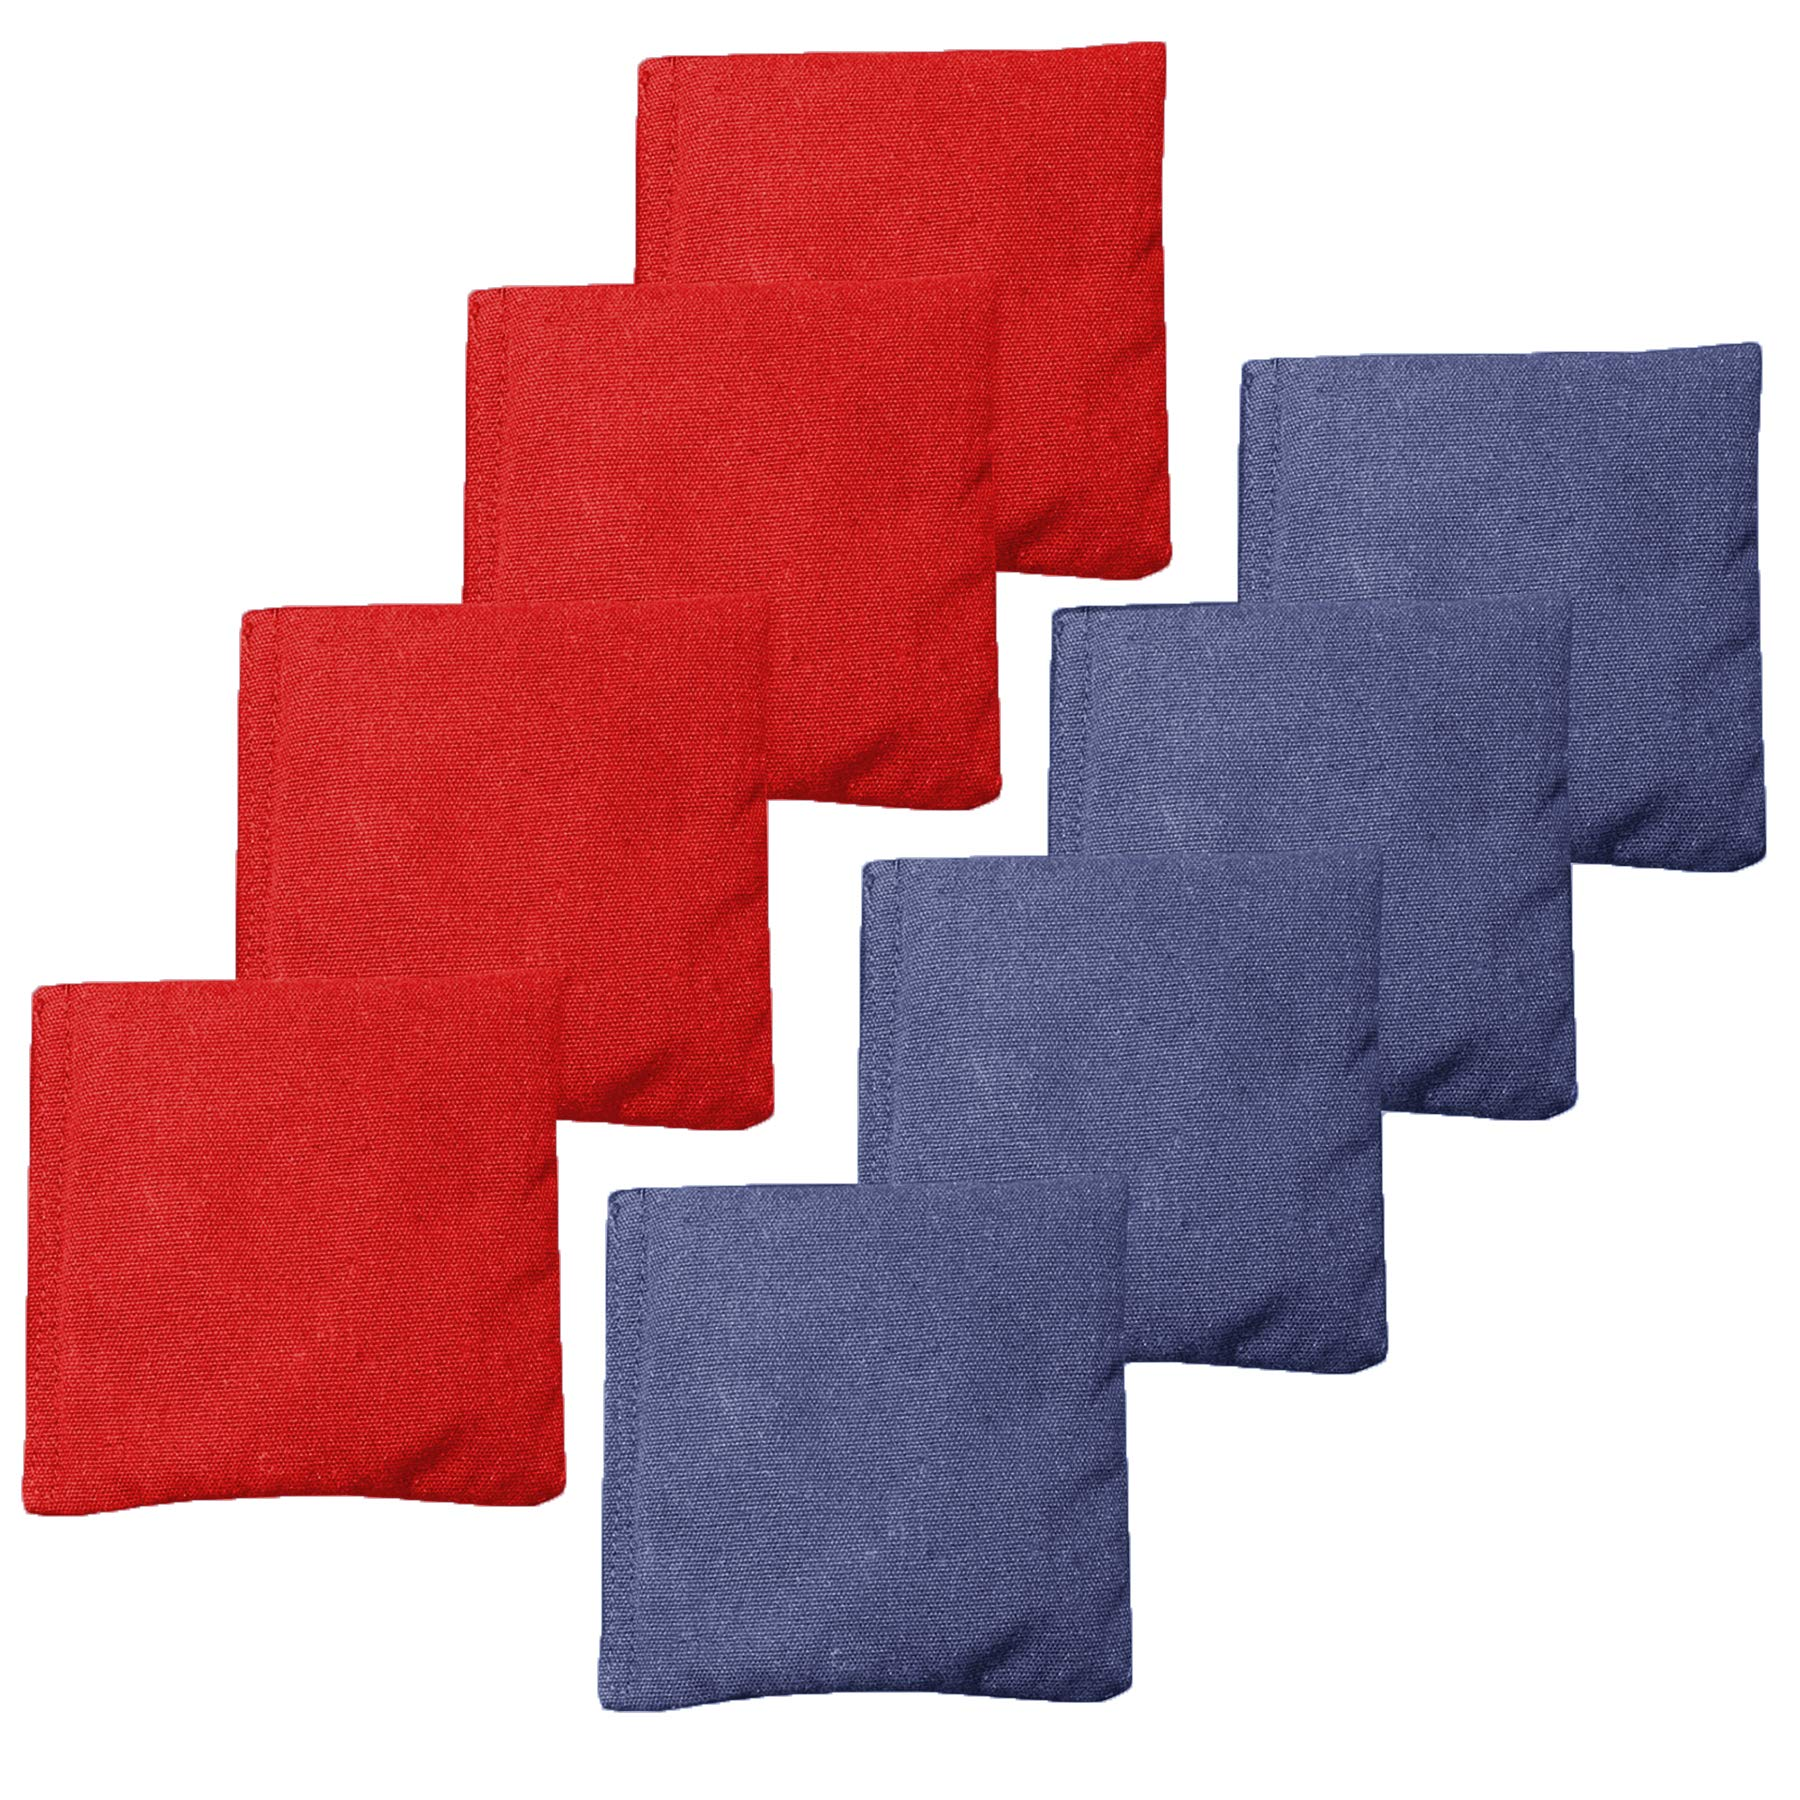 All Weather Cornhole Bean Bags Set of 8 - Duck Cloth, Regulation Size & Weight - Red & Navy Blue